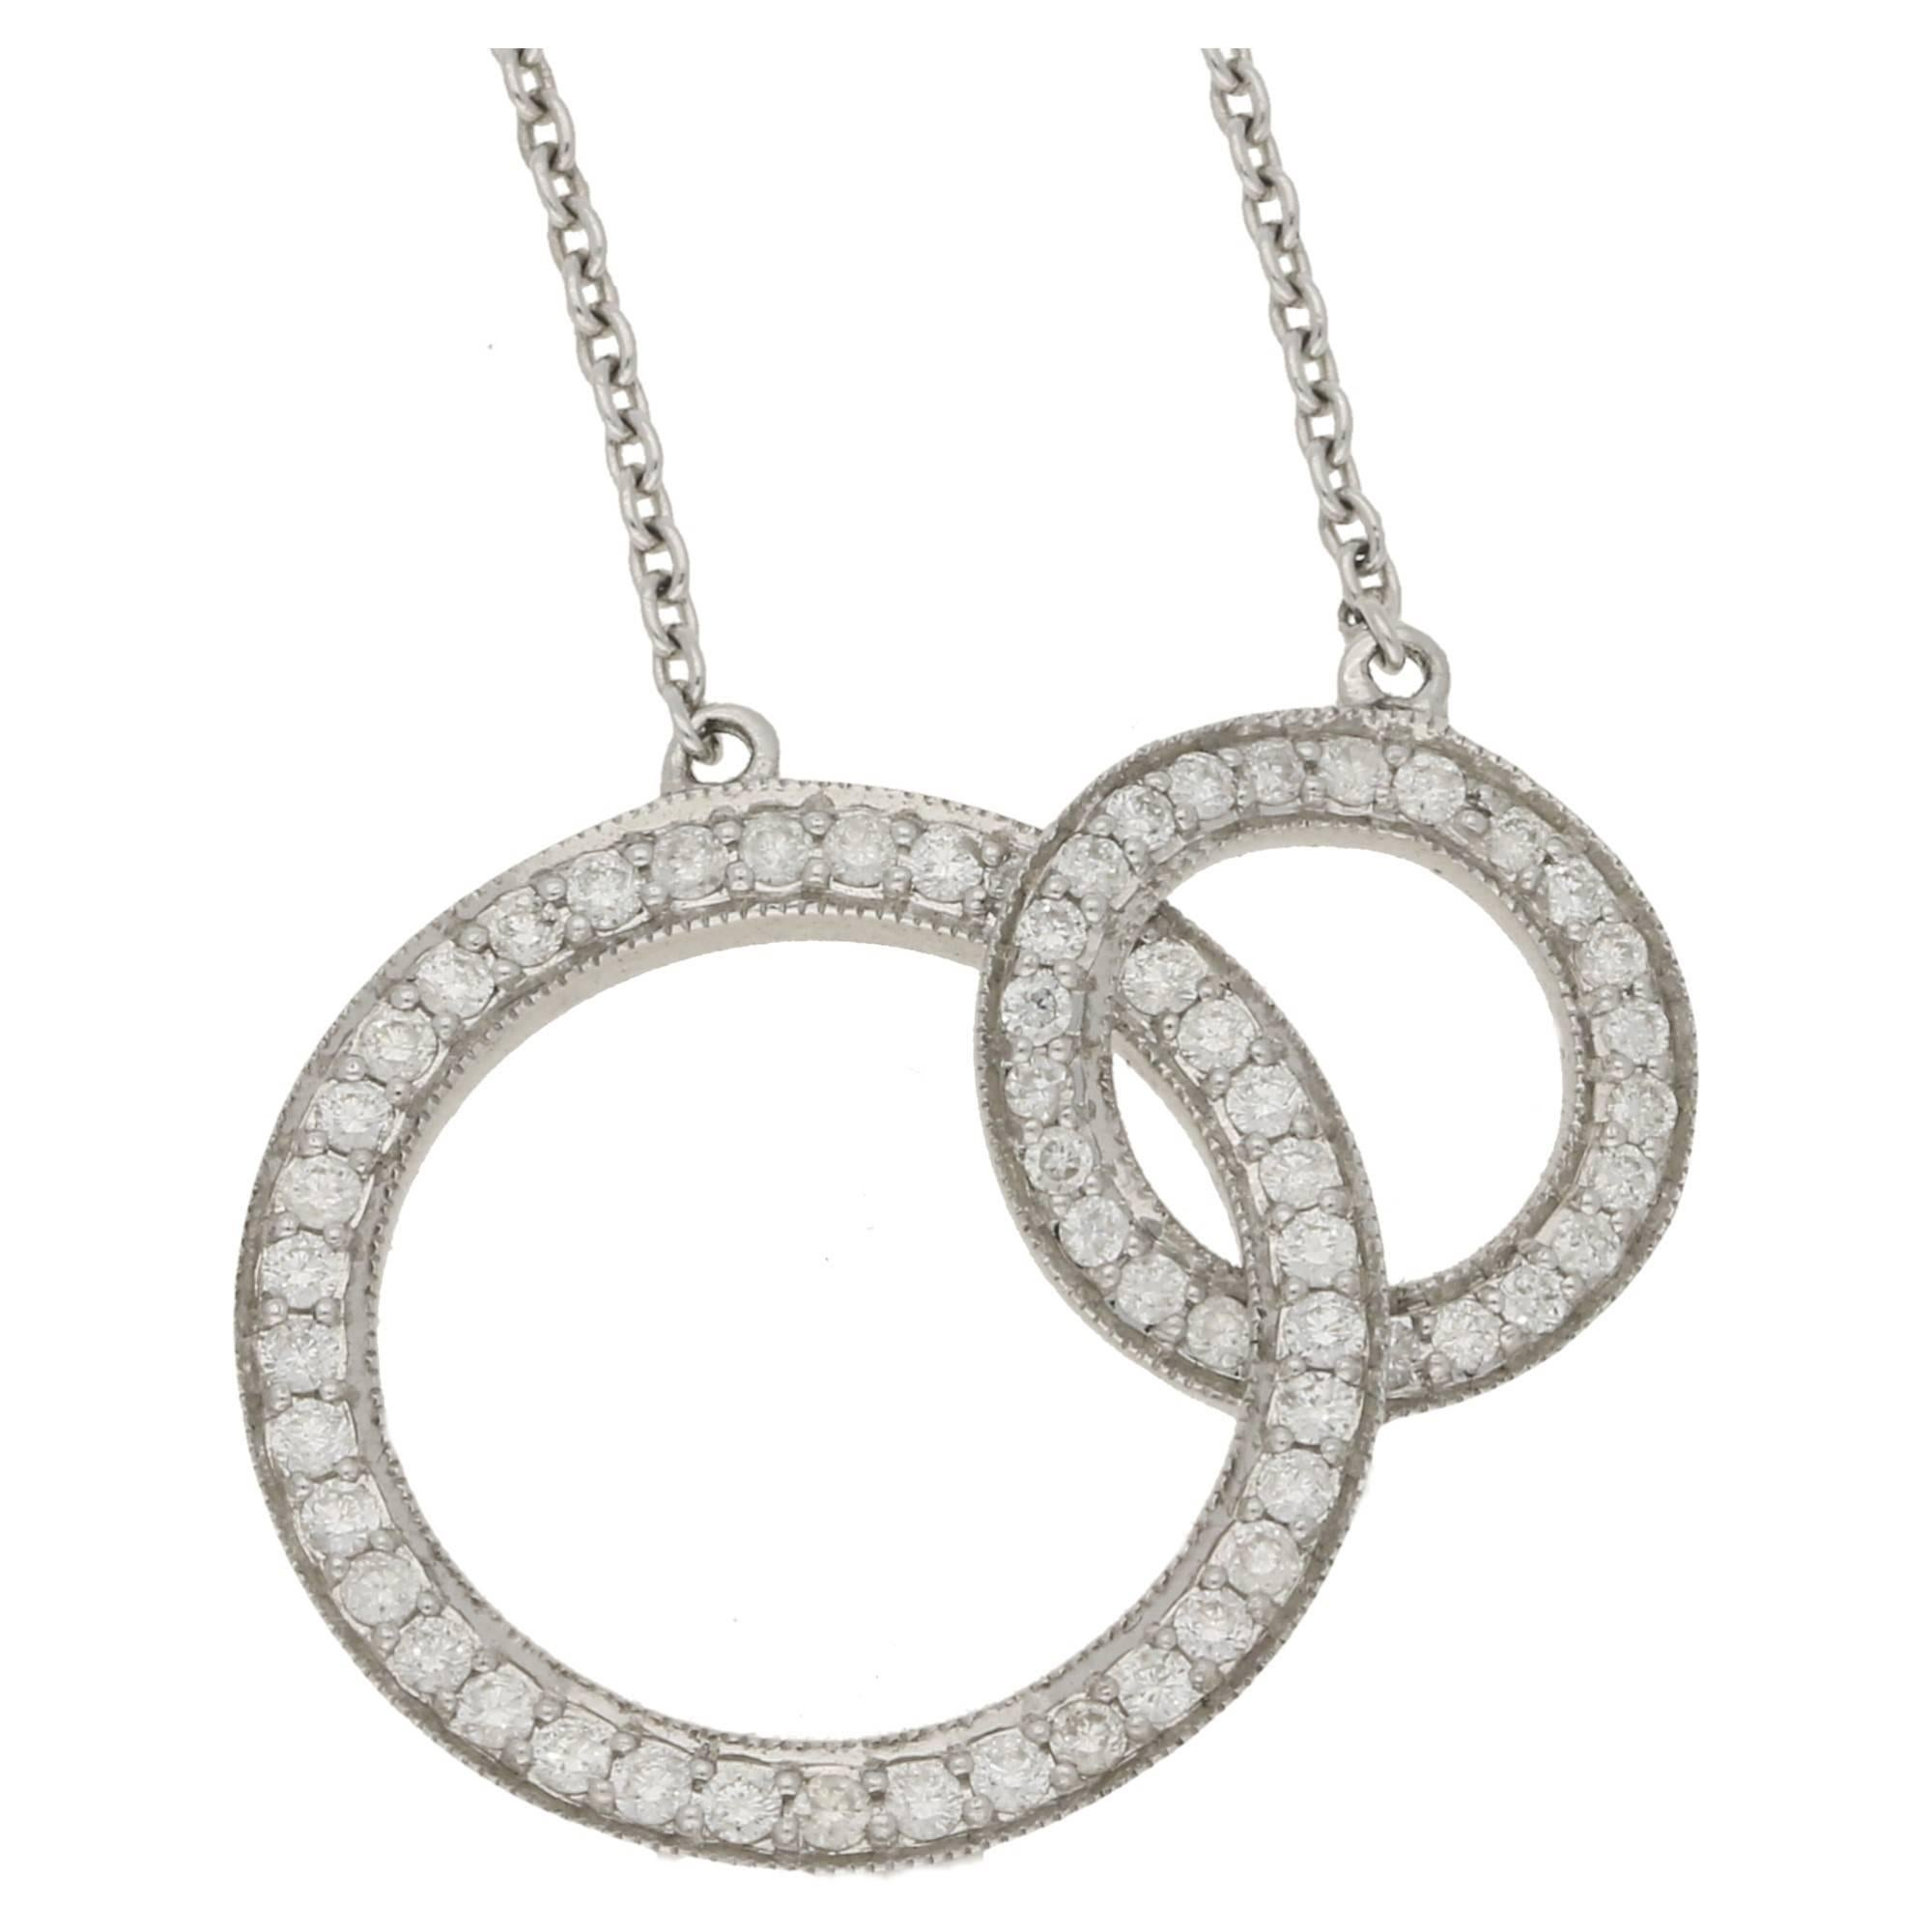 defne wd pendant necklace selinkent diamond defnenecklace kent marquise ii products yg white sapphire selin